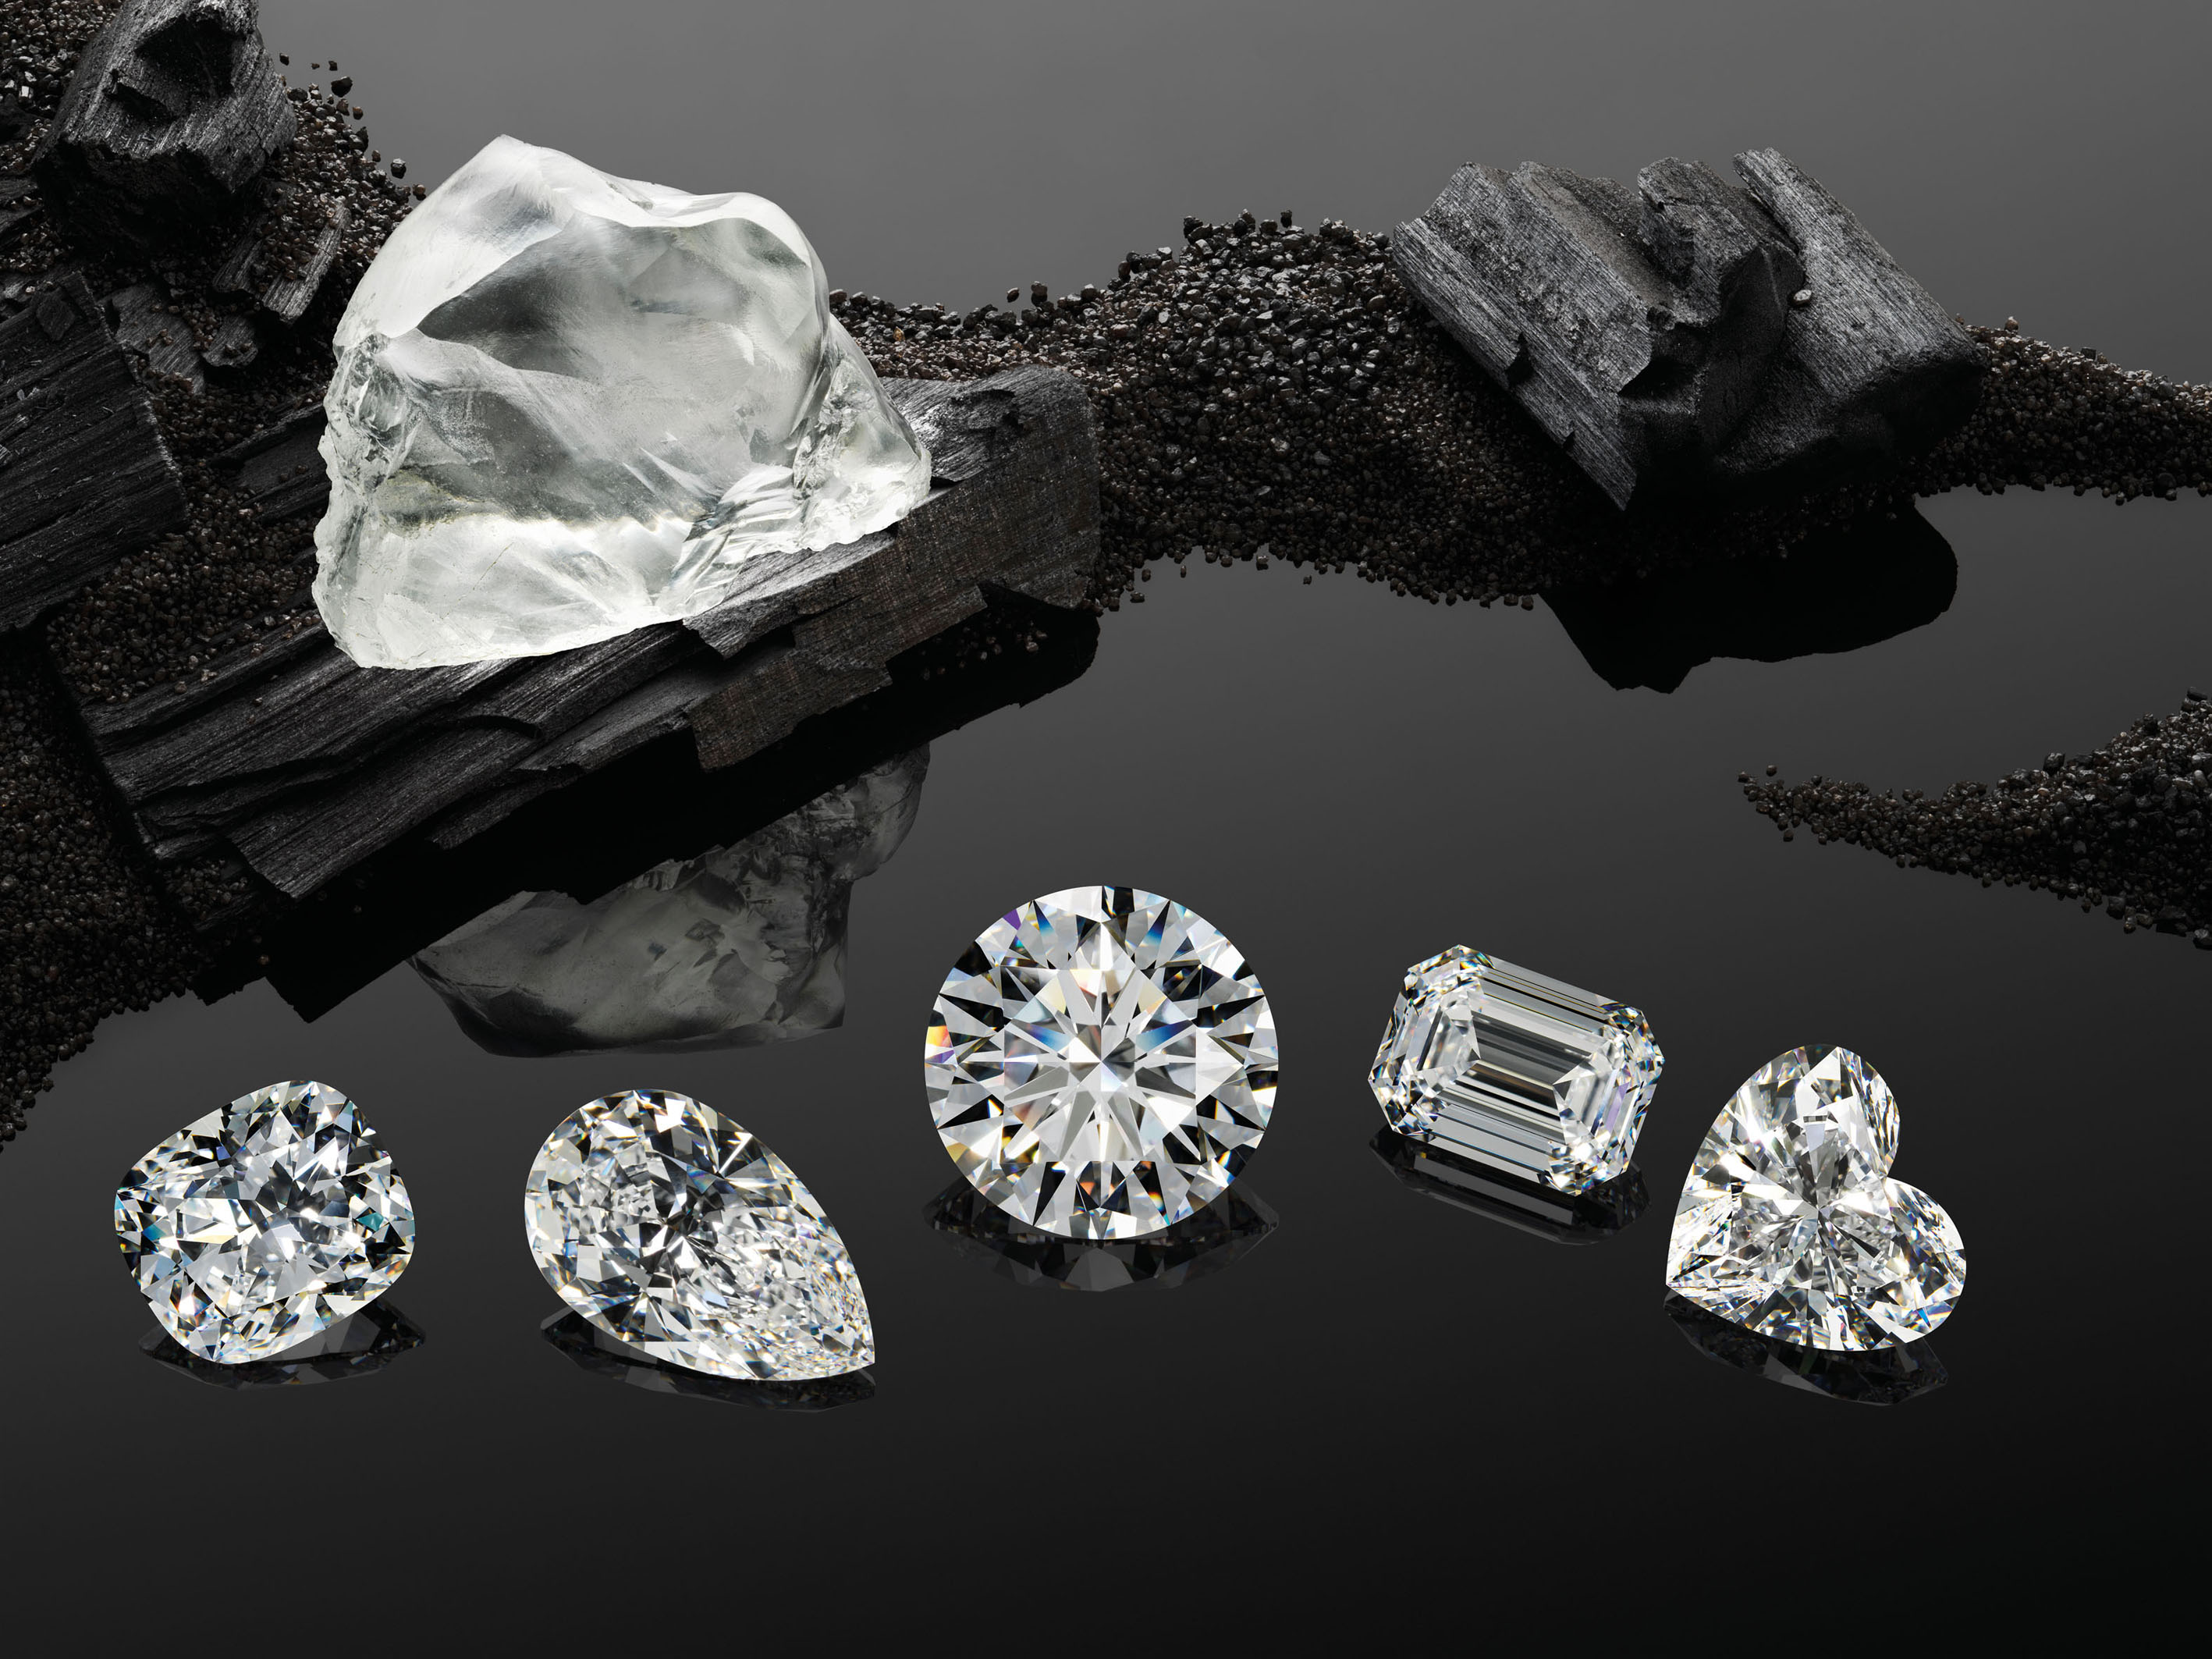 Chopard launches high jewellery collection